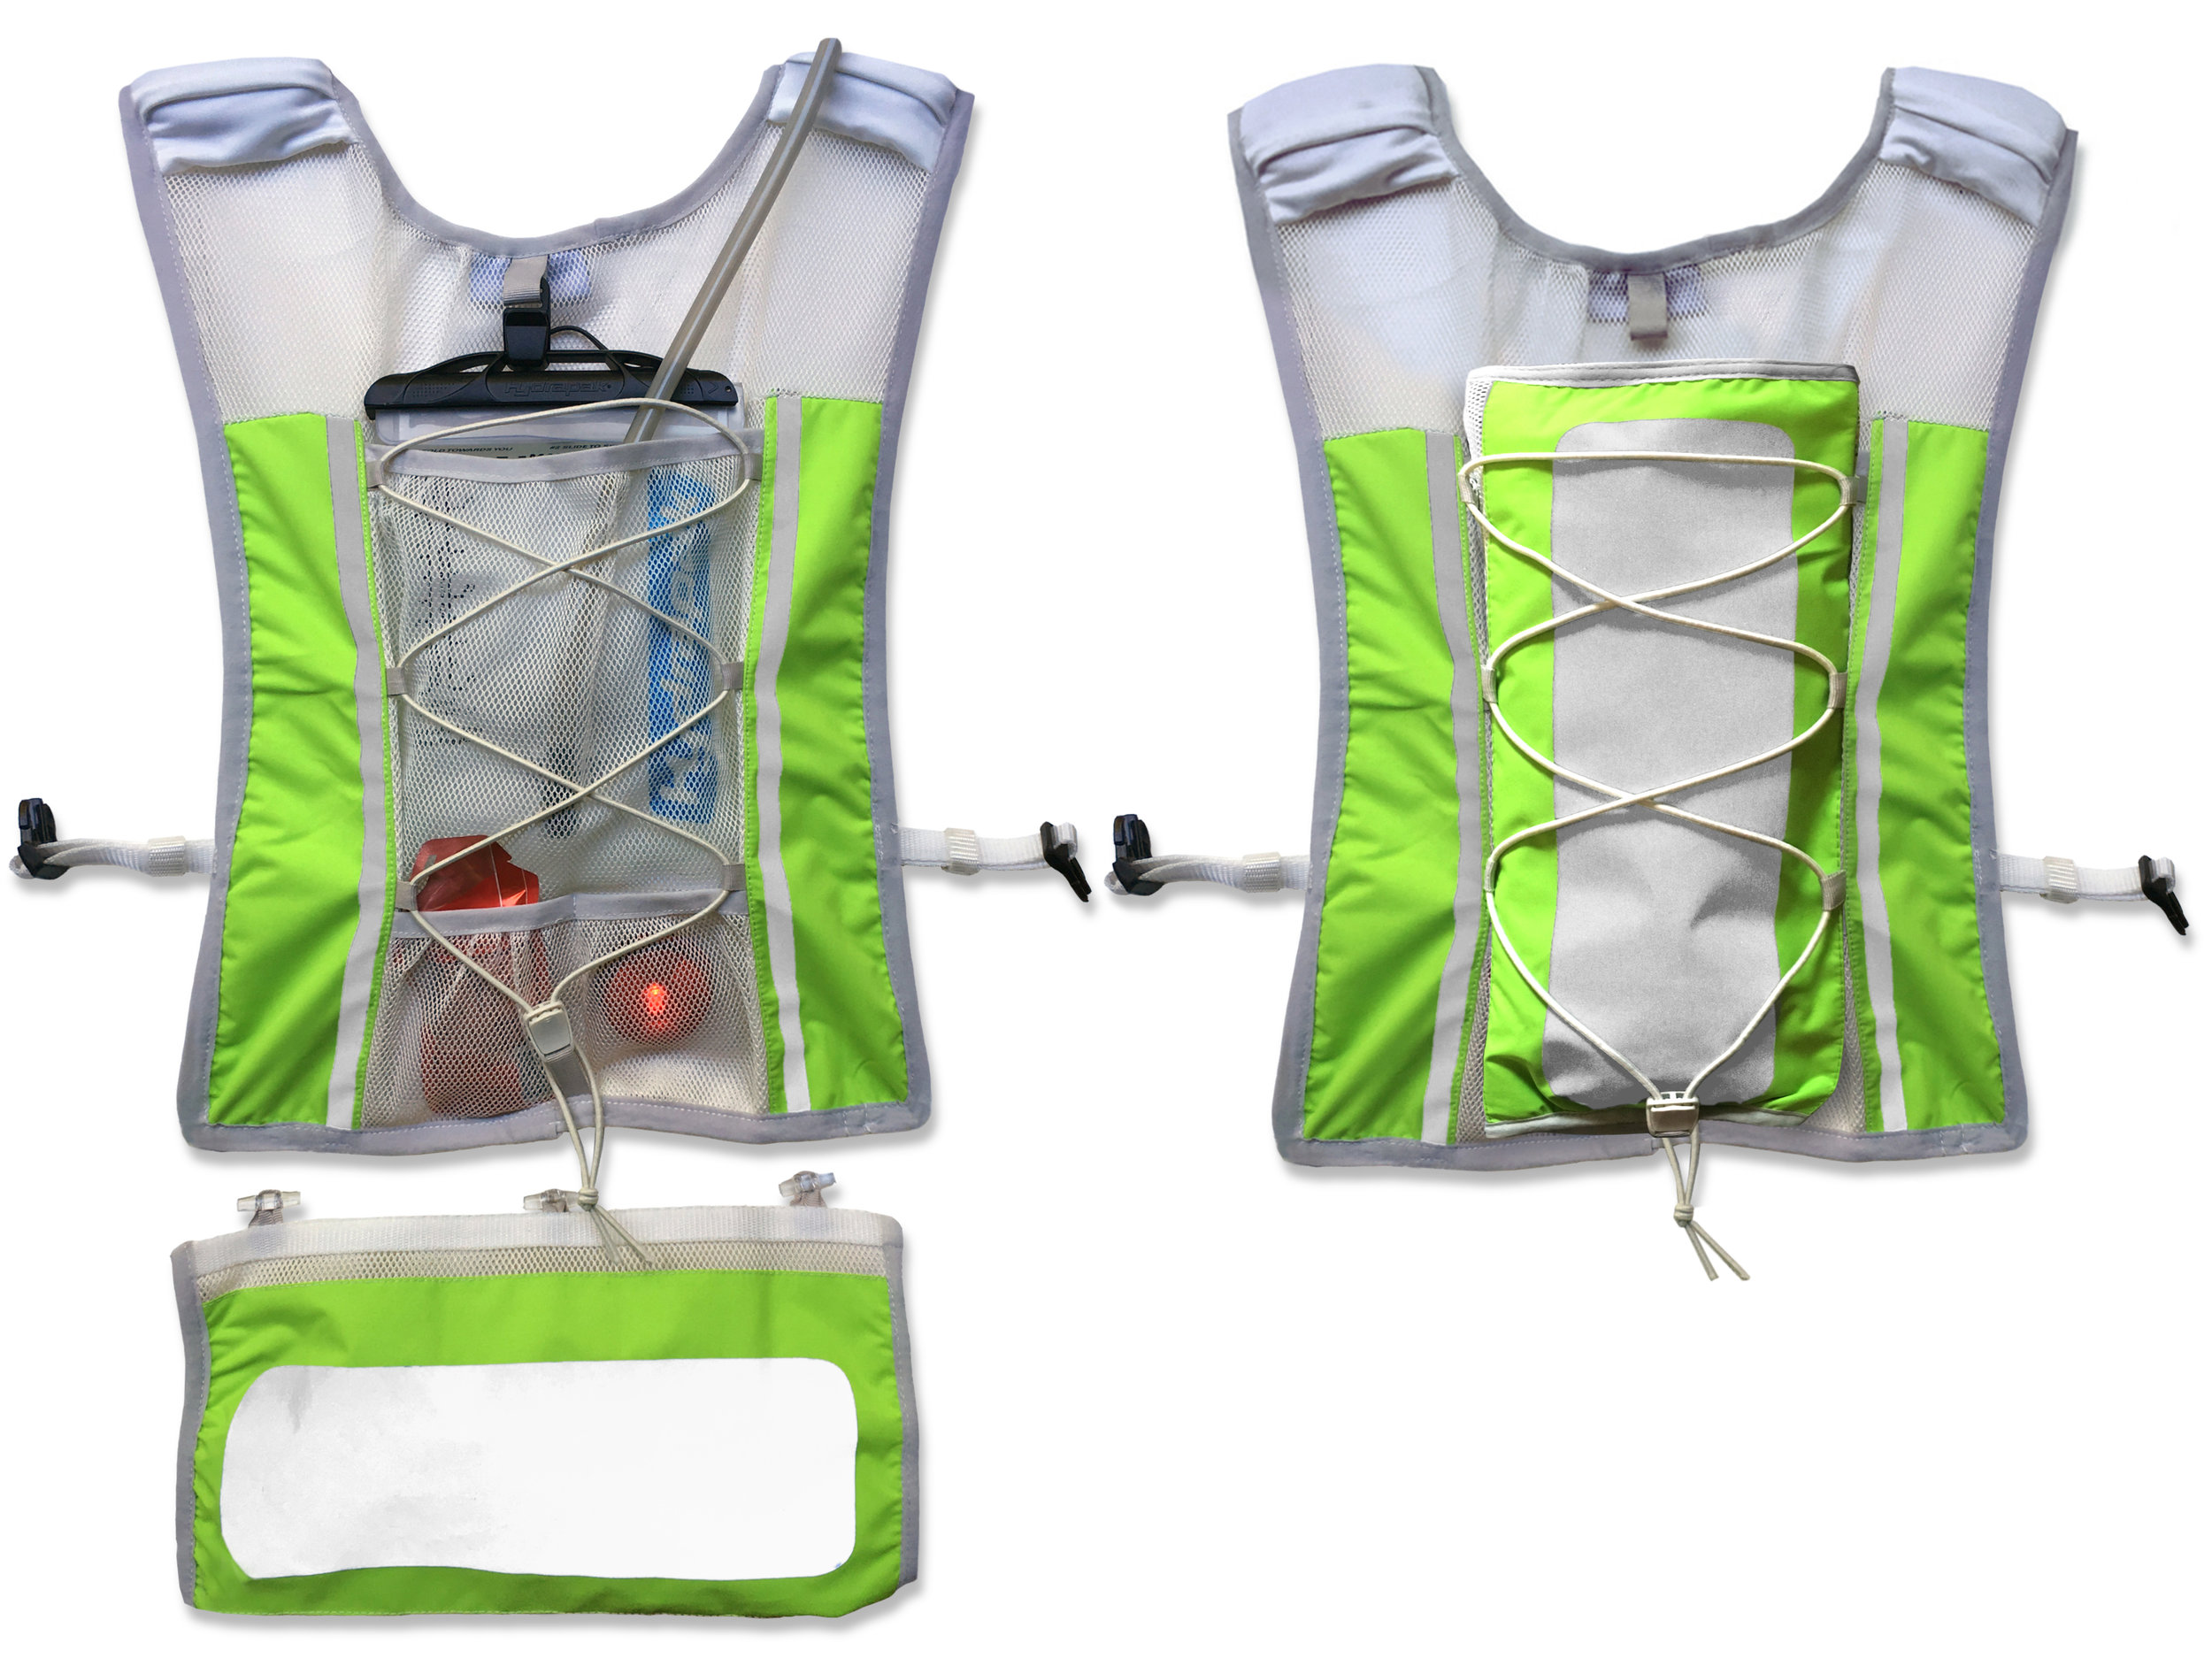 Shows detachable reflective pocket hanging below for cycling, and packed in the bungee system.